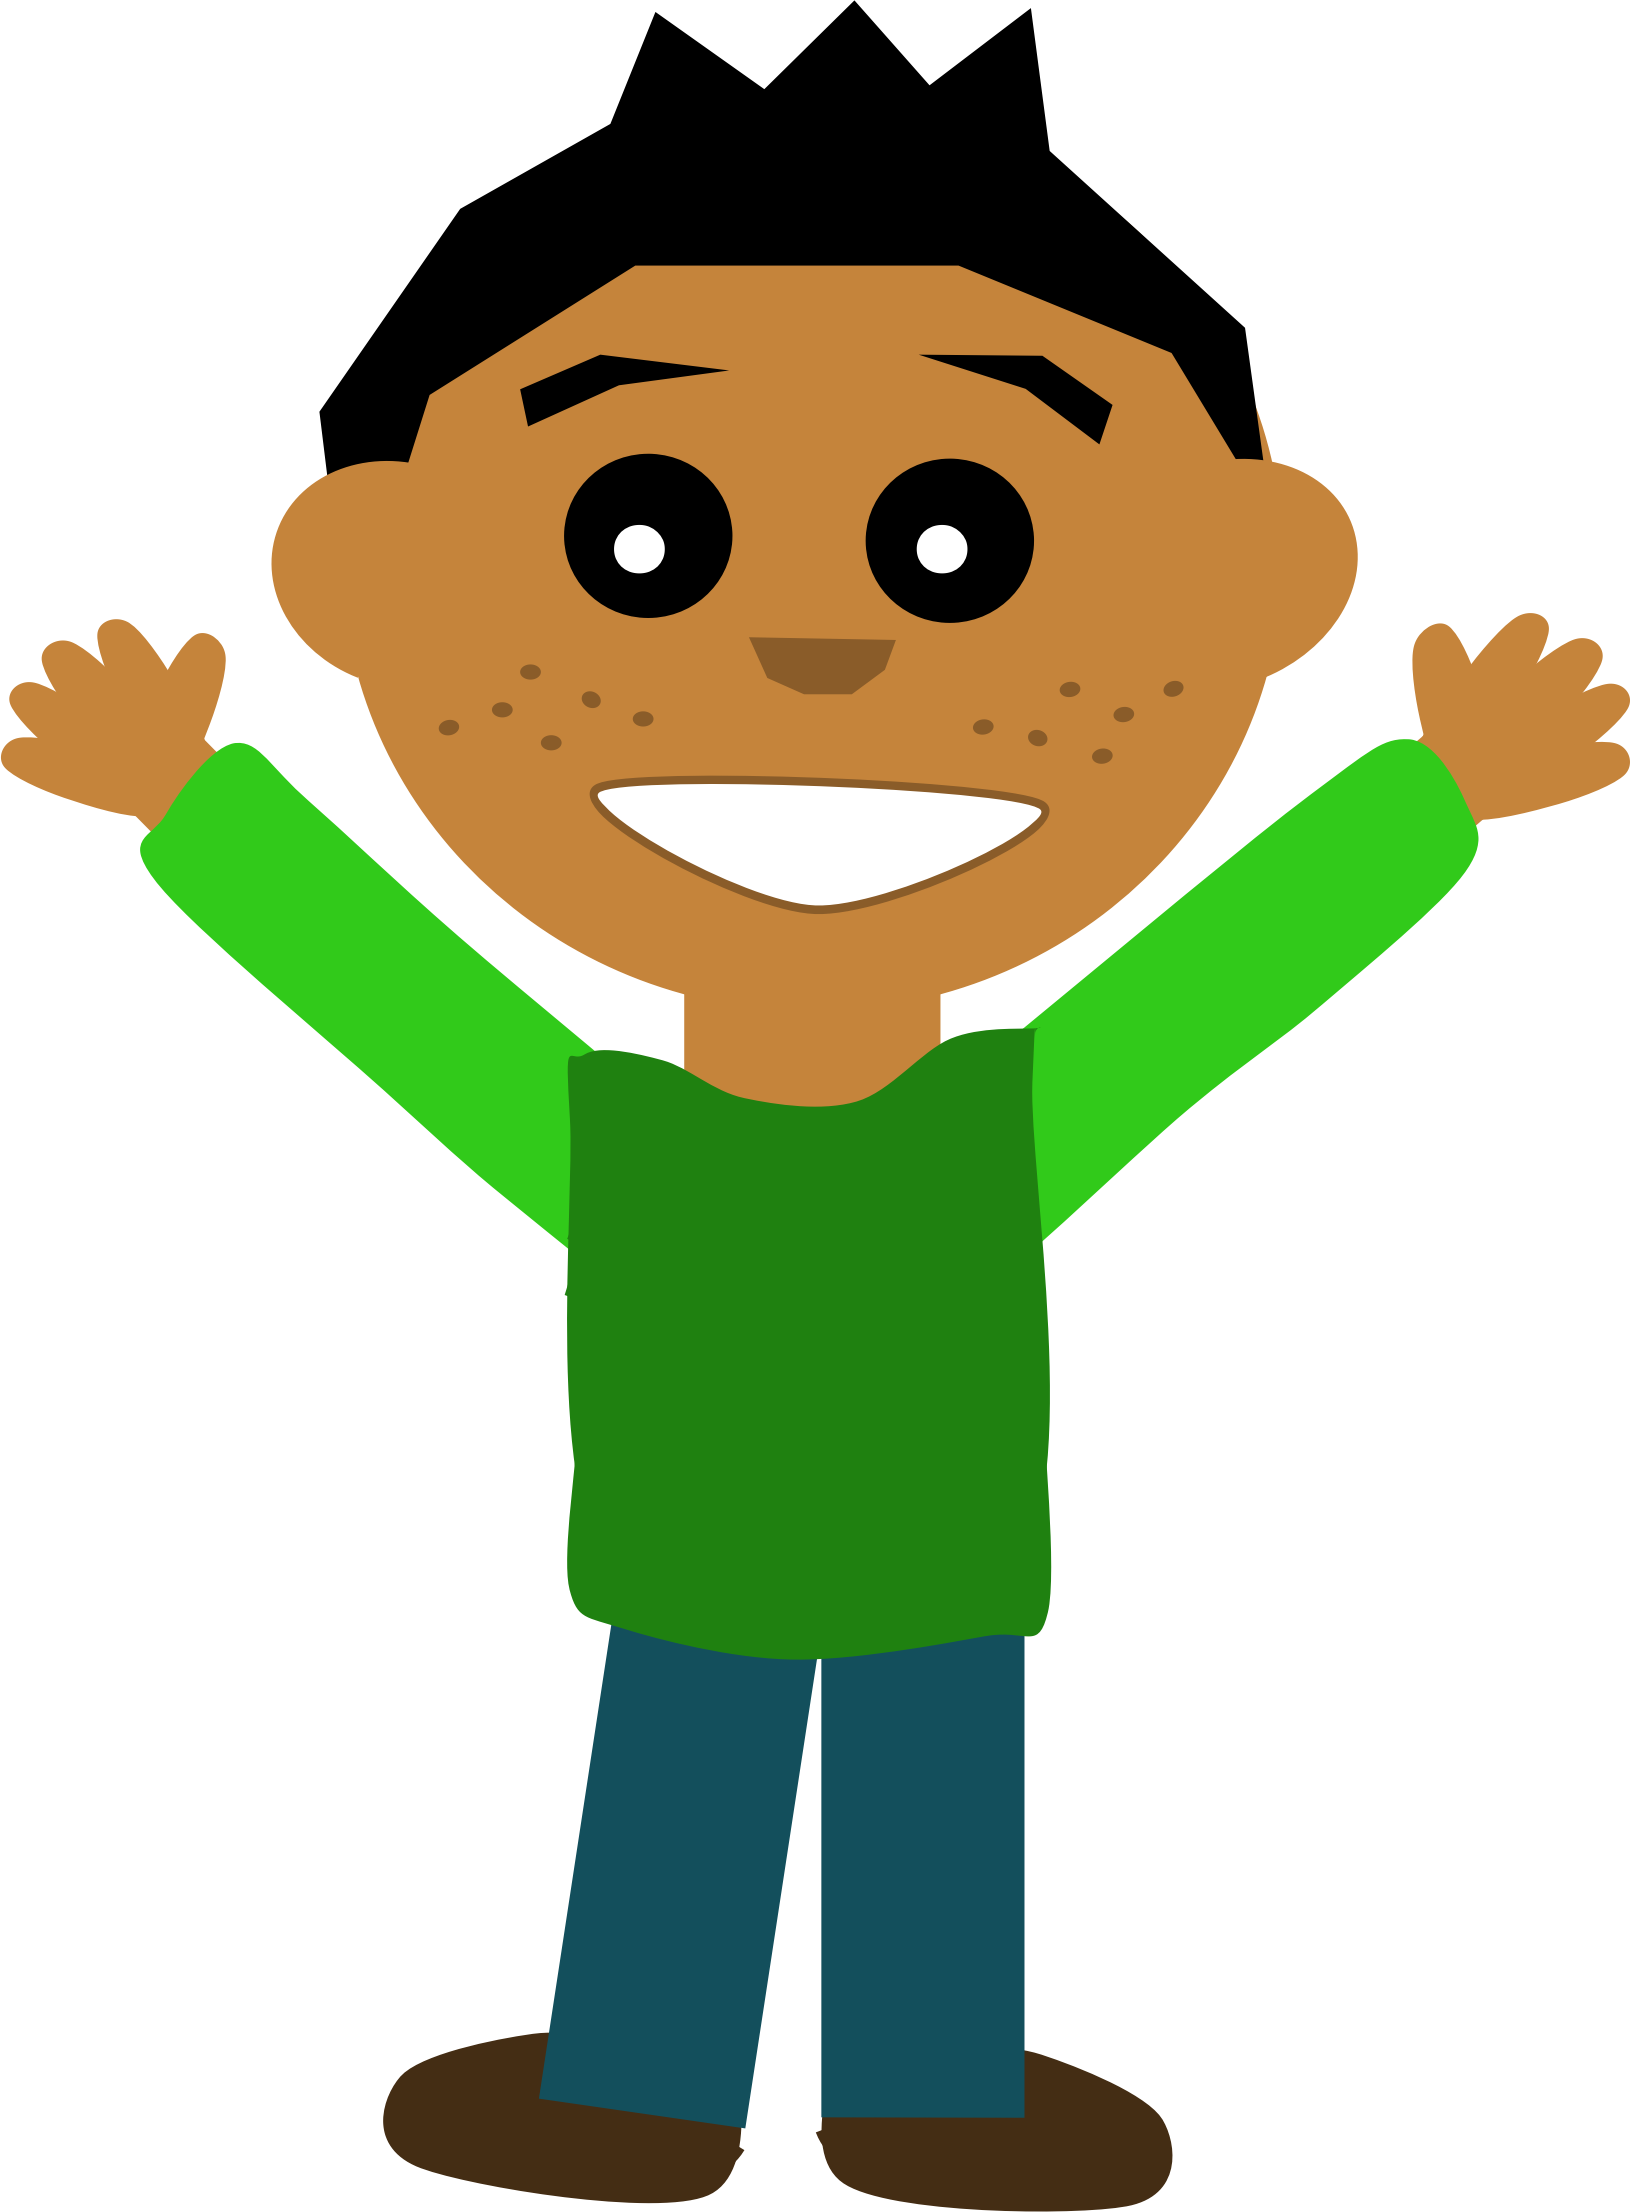 Happiness clipart happy man. Doing person clip arts